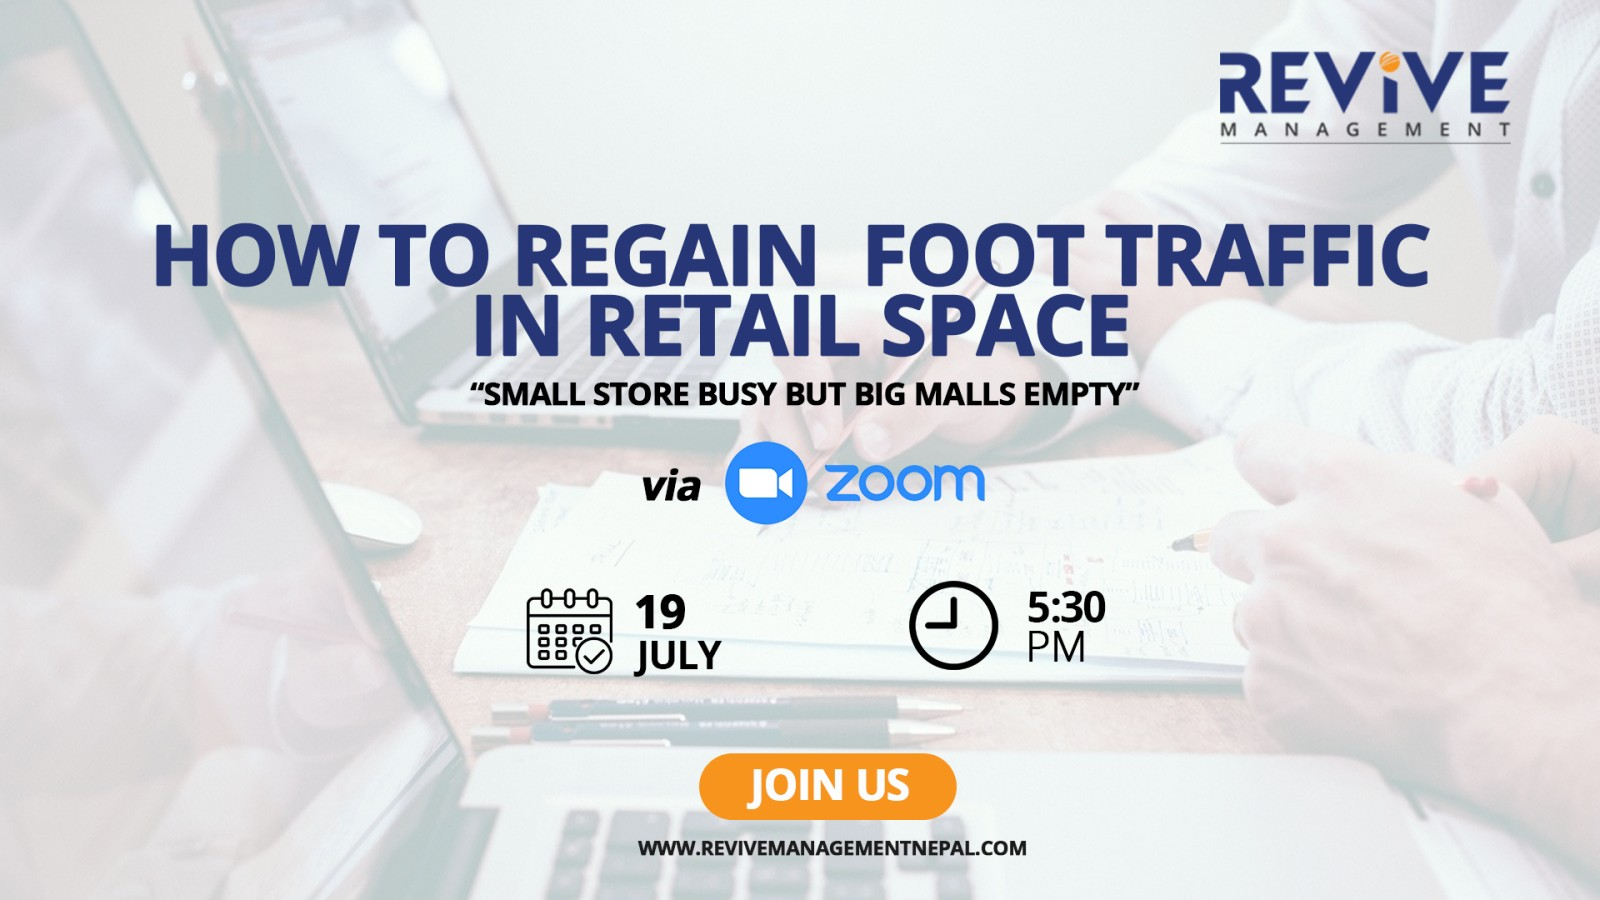 How to Regain Foot Traffic in Retail Space